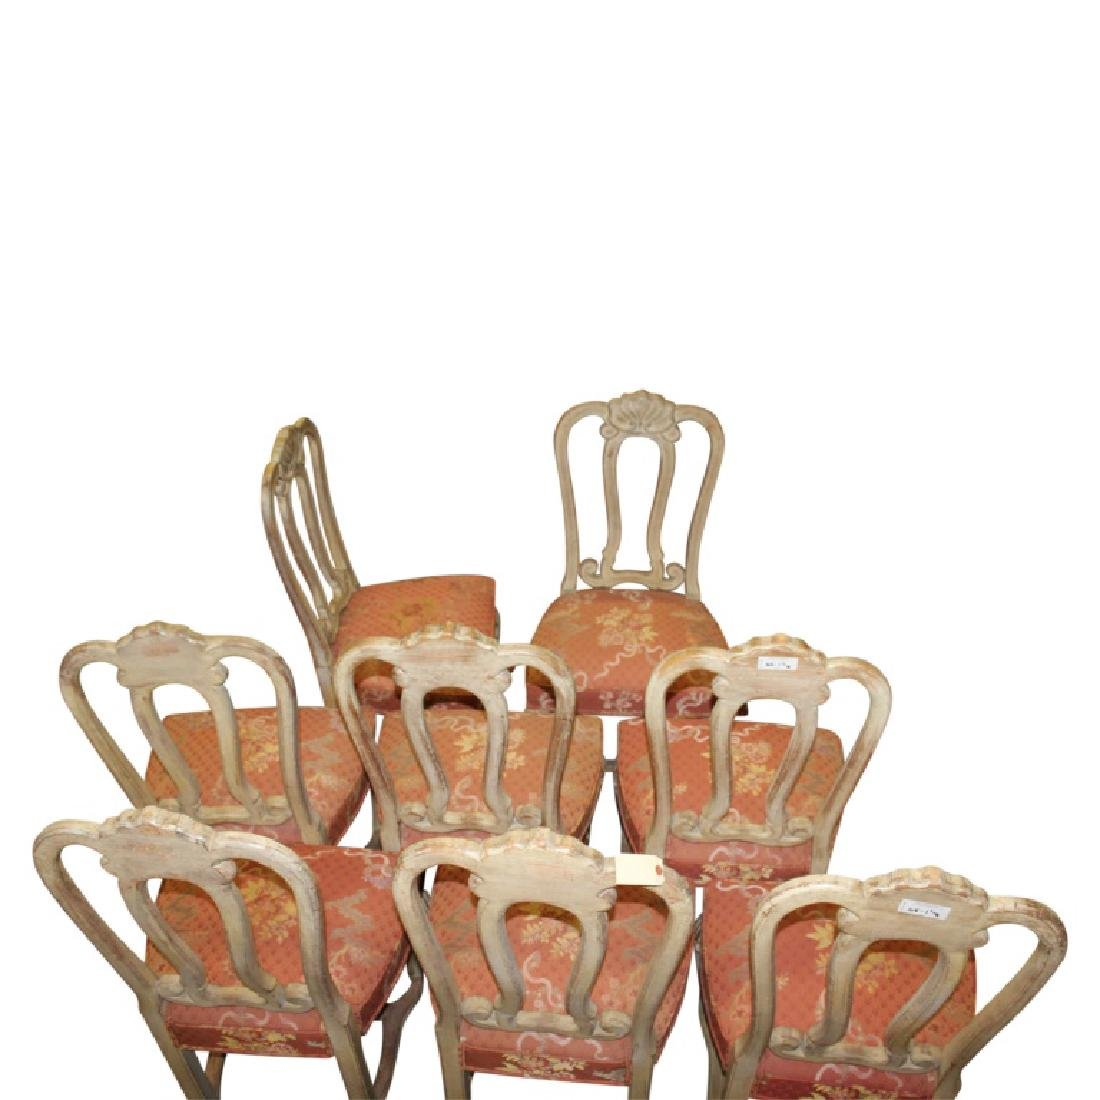 French Upholstered Dining Chairs - 8PCS - 4